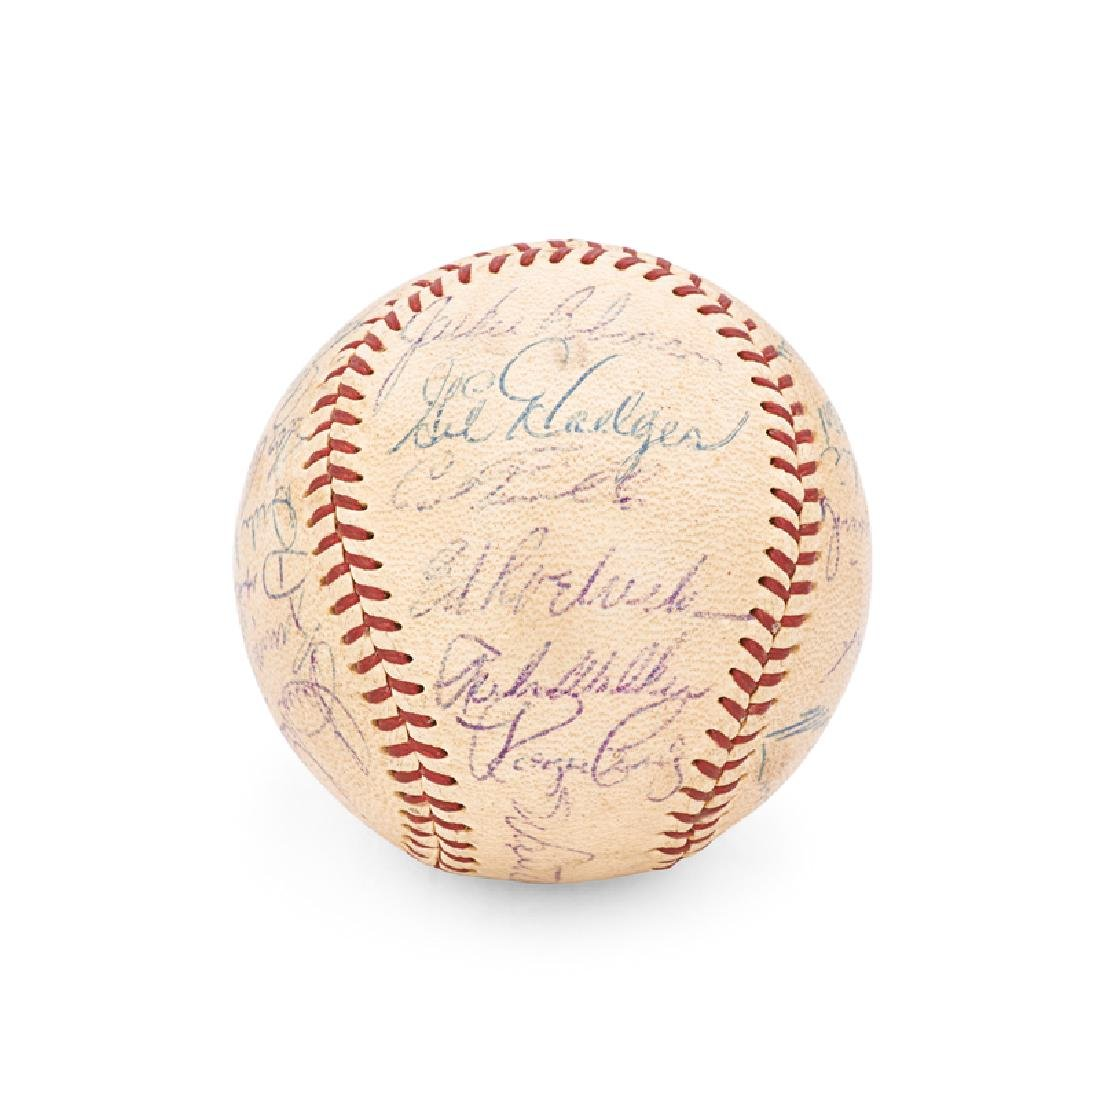 1956 BROOKLYN DODGERS SIGNED BASEBALL